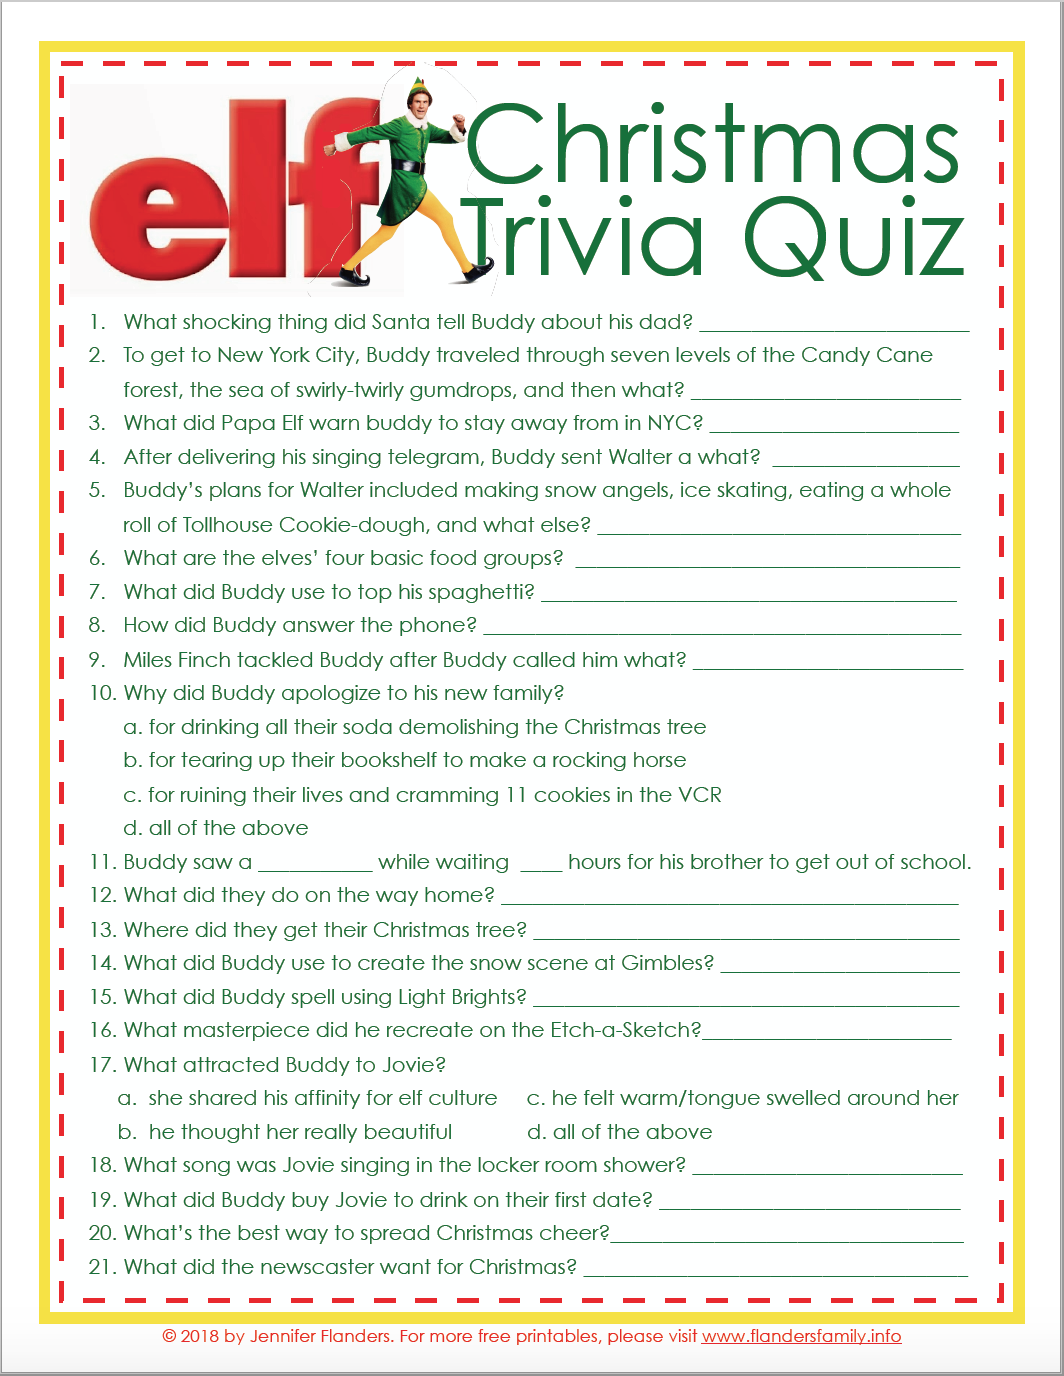 photograph relating to Christmas Trivia Game Printable identify Elf Xmas Trivia Match (Absolutely free Printable) - Flanders Household